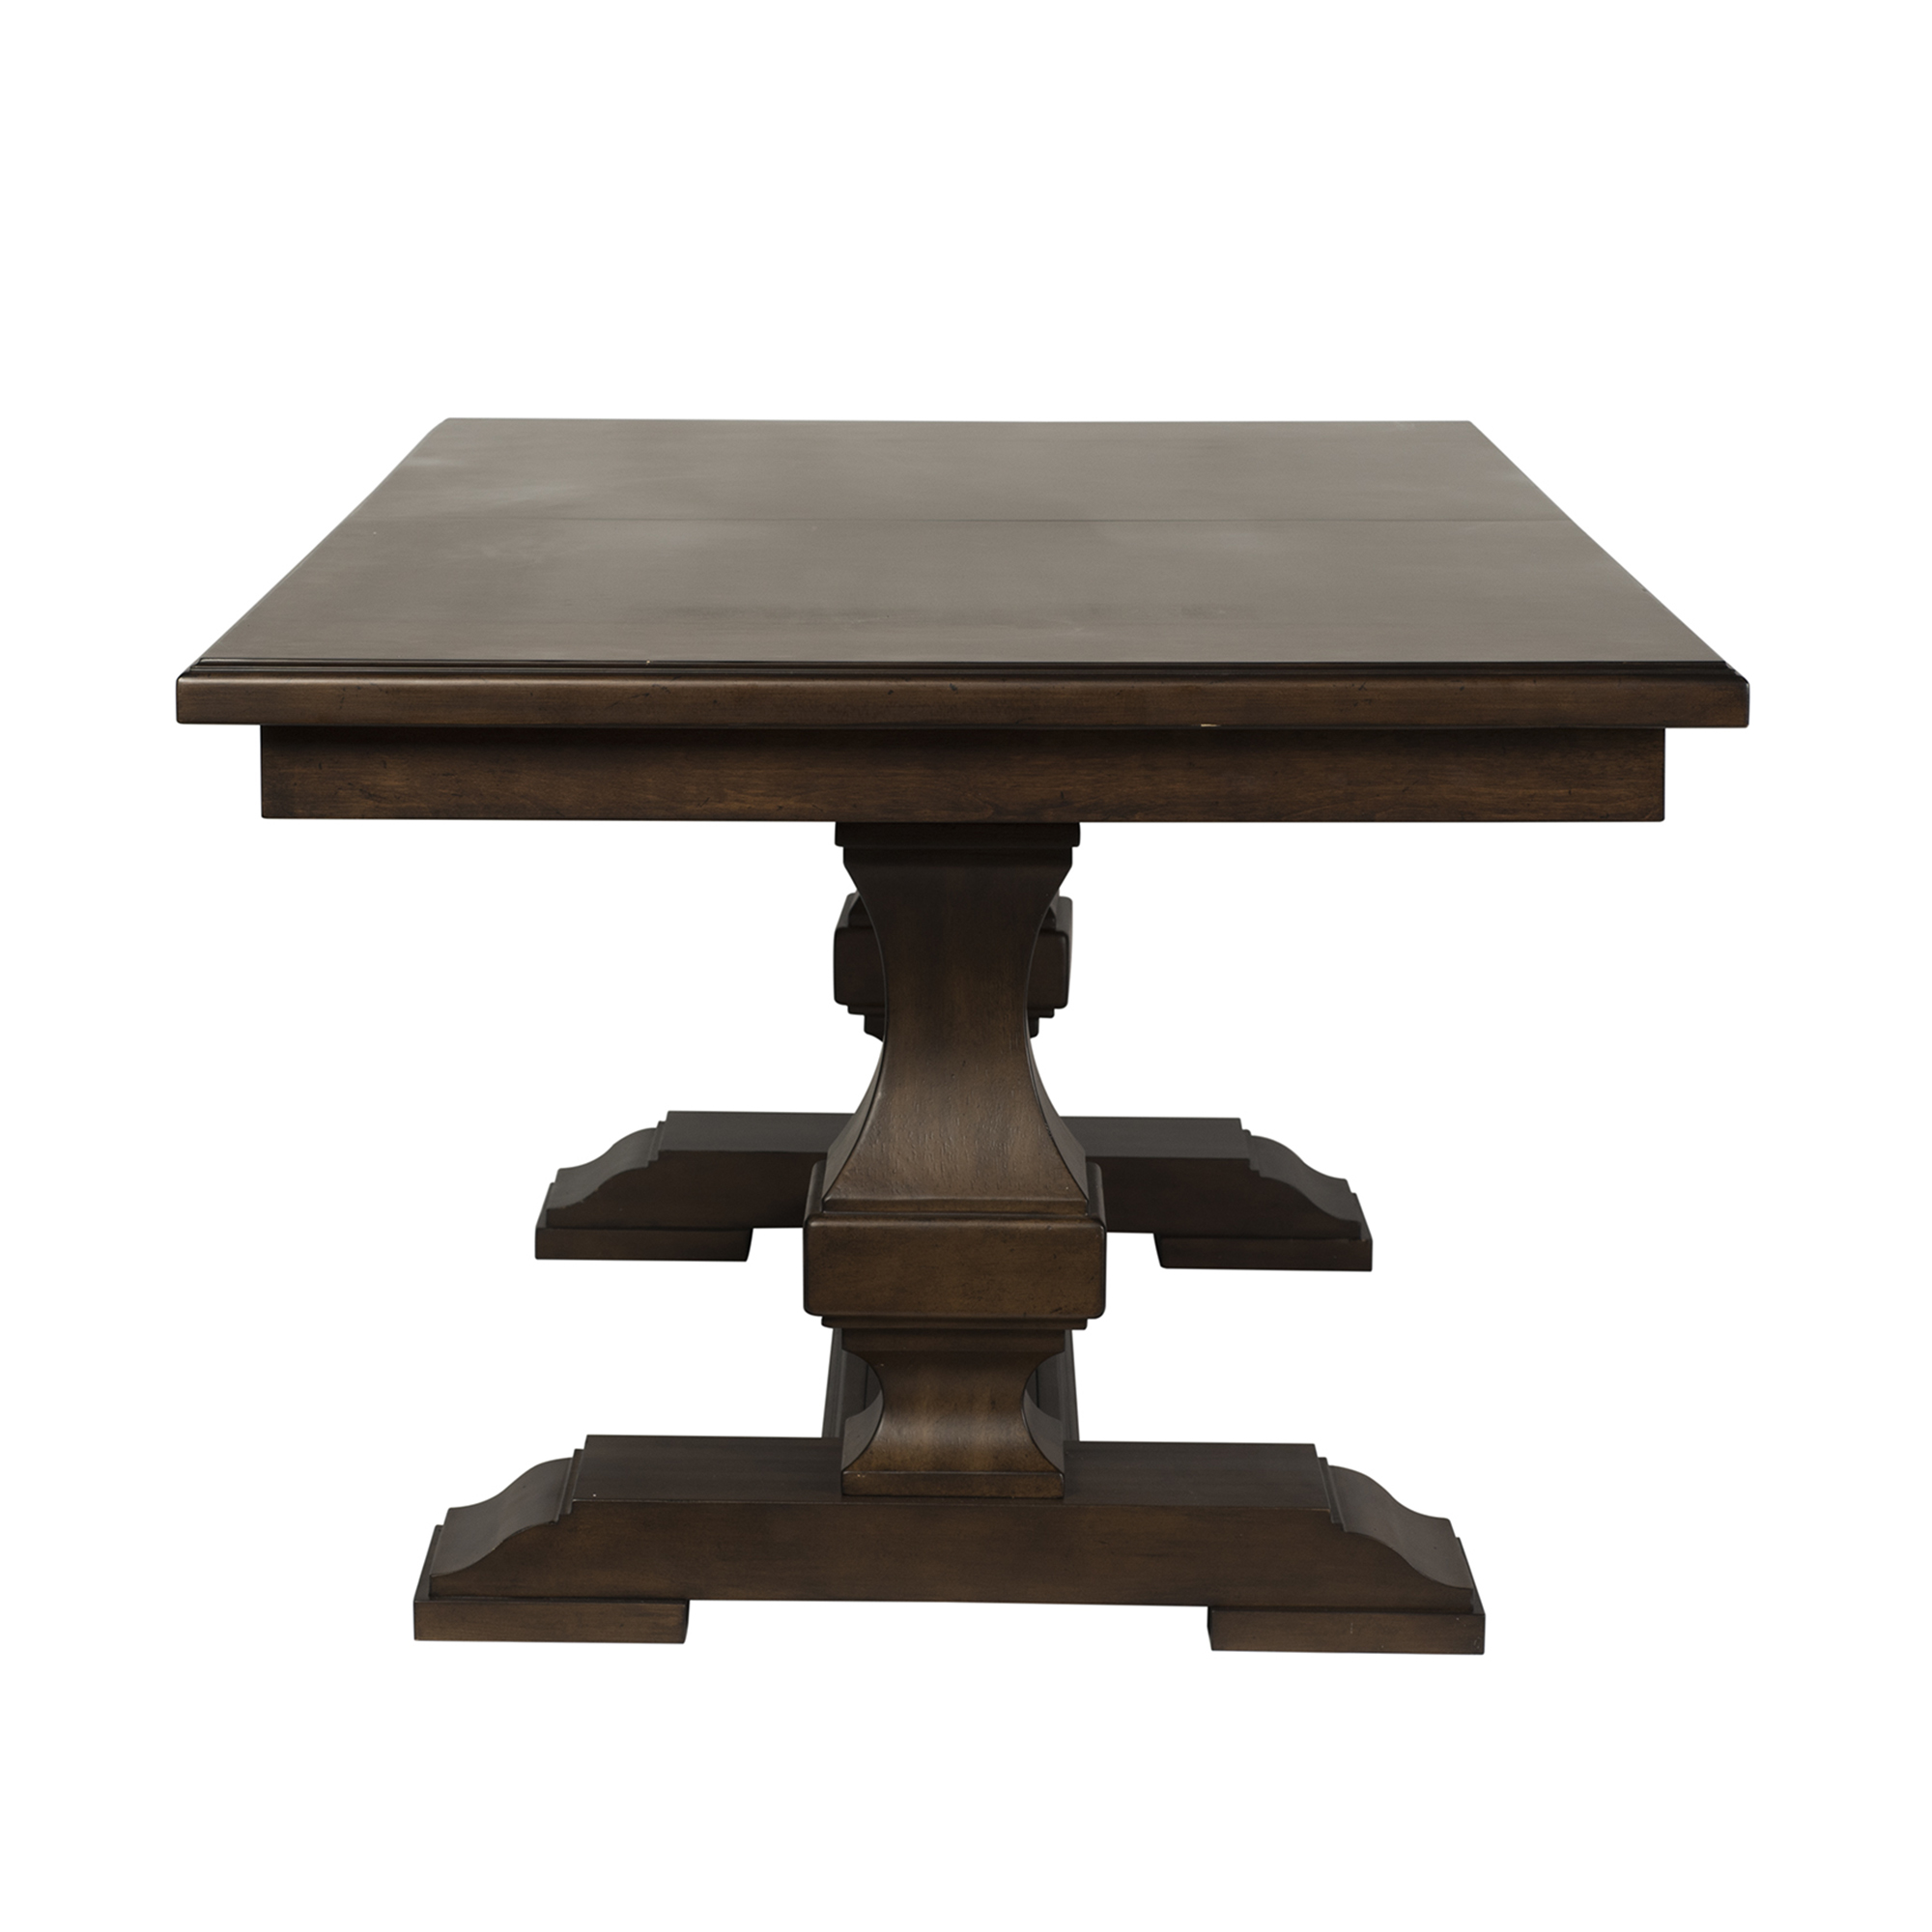 5 Piece Double Pedestal Table Set By Samuel Frederick Furniture The Furniture Mall